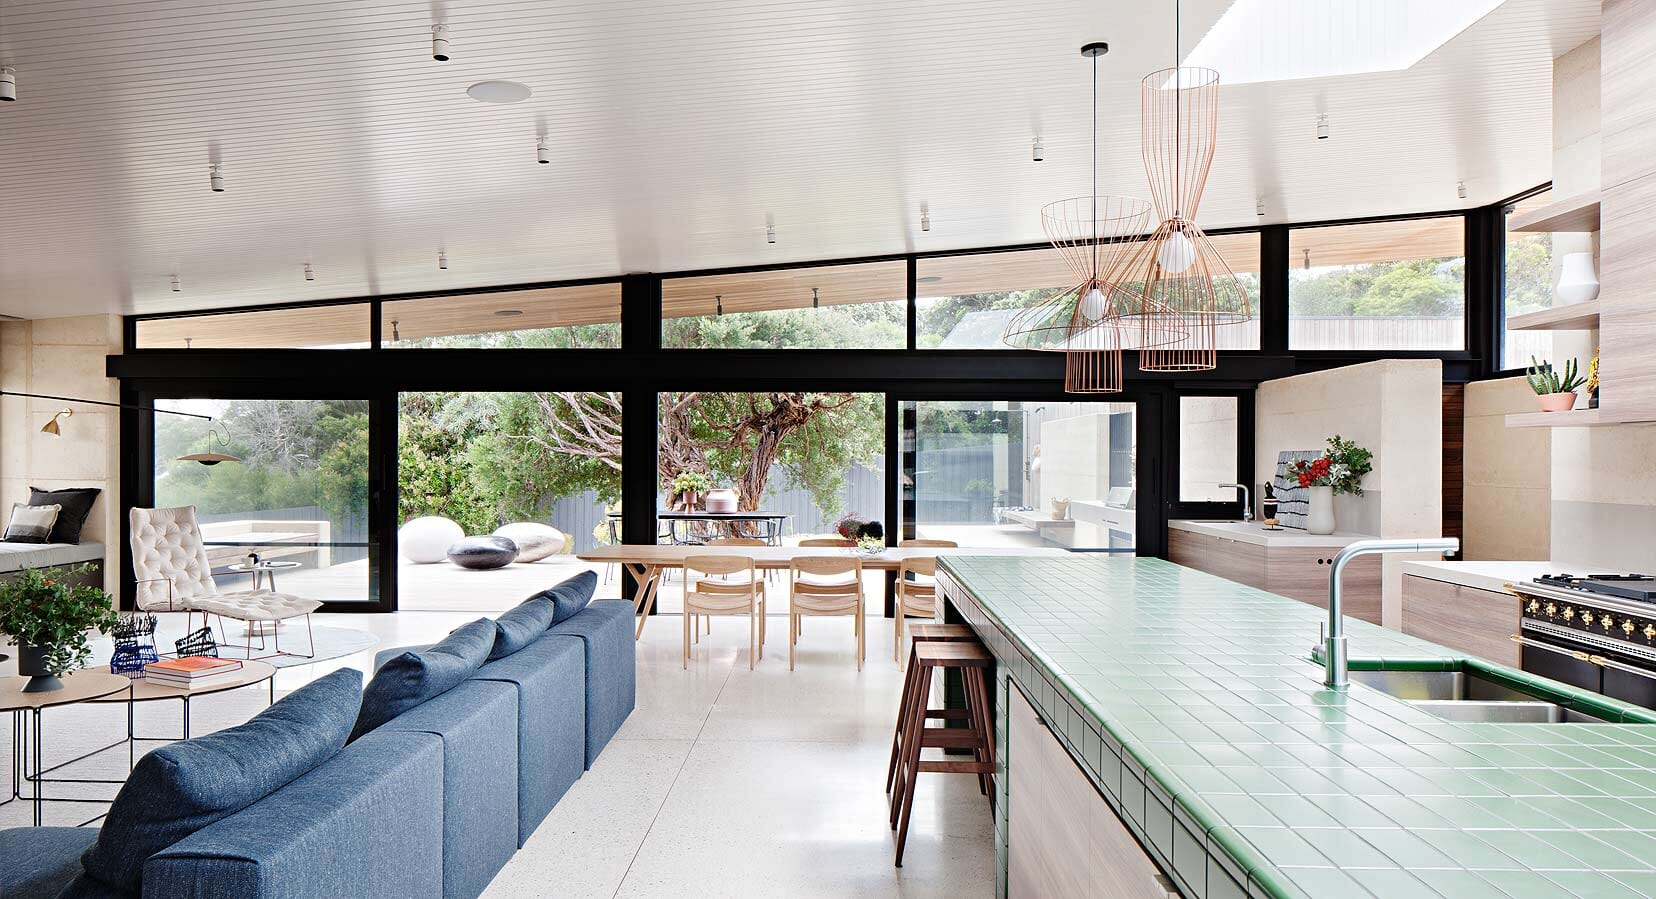 The Layer House by Robson Rak Architects